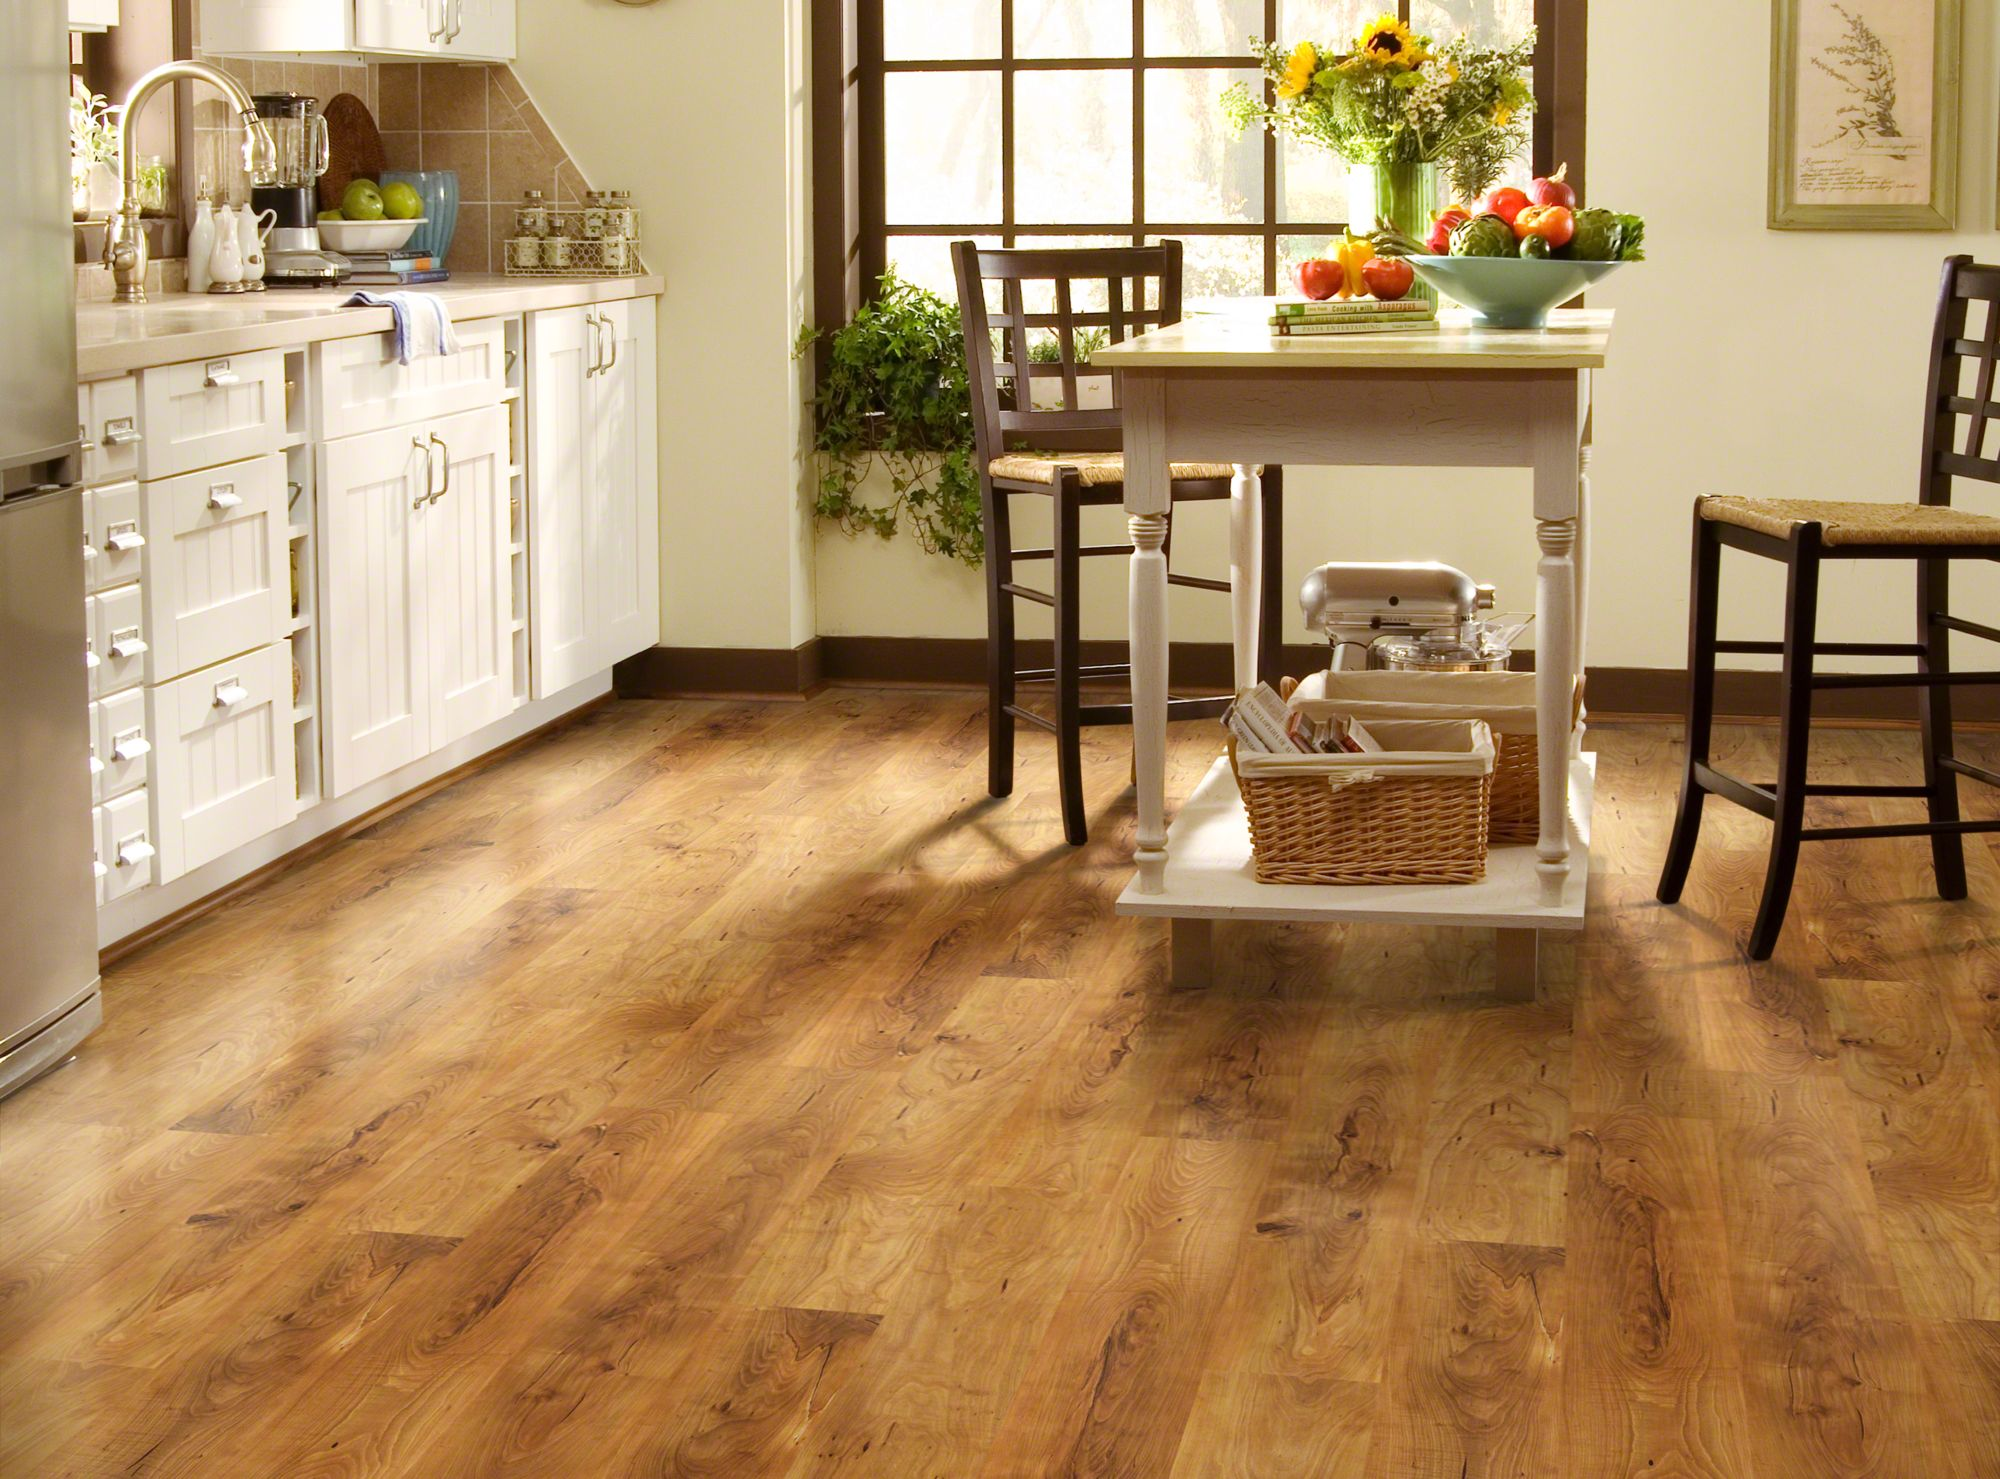 Simple laminate flooring laminate flooring pros and cons | jb property solutions HFWKUZD